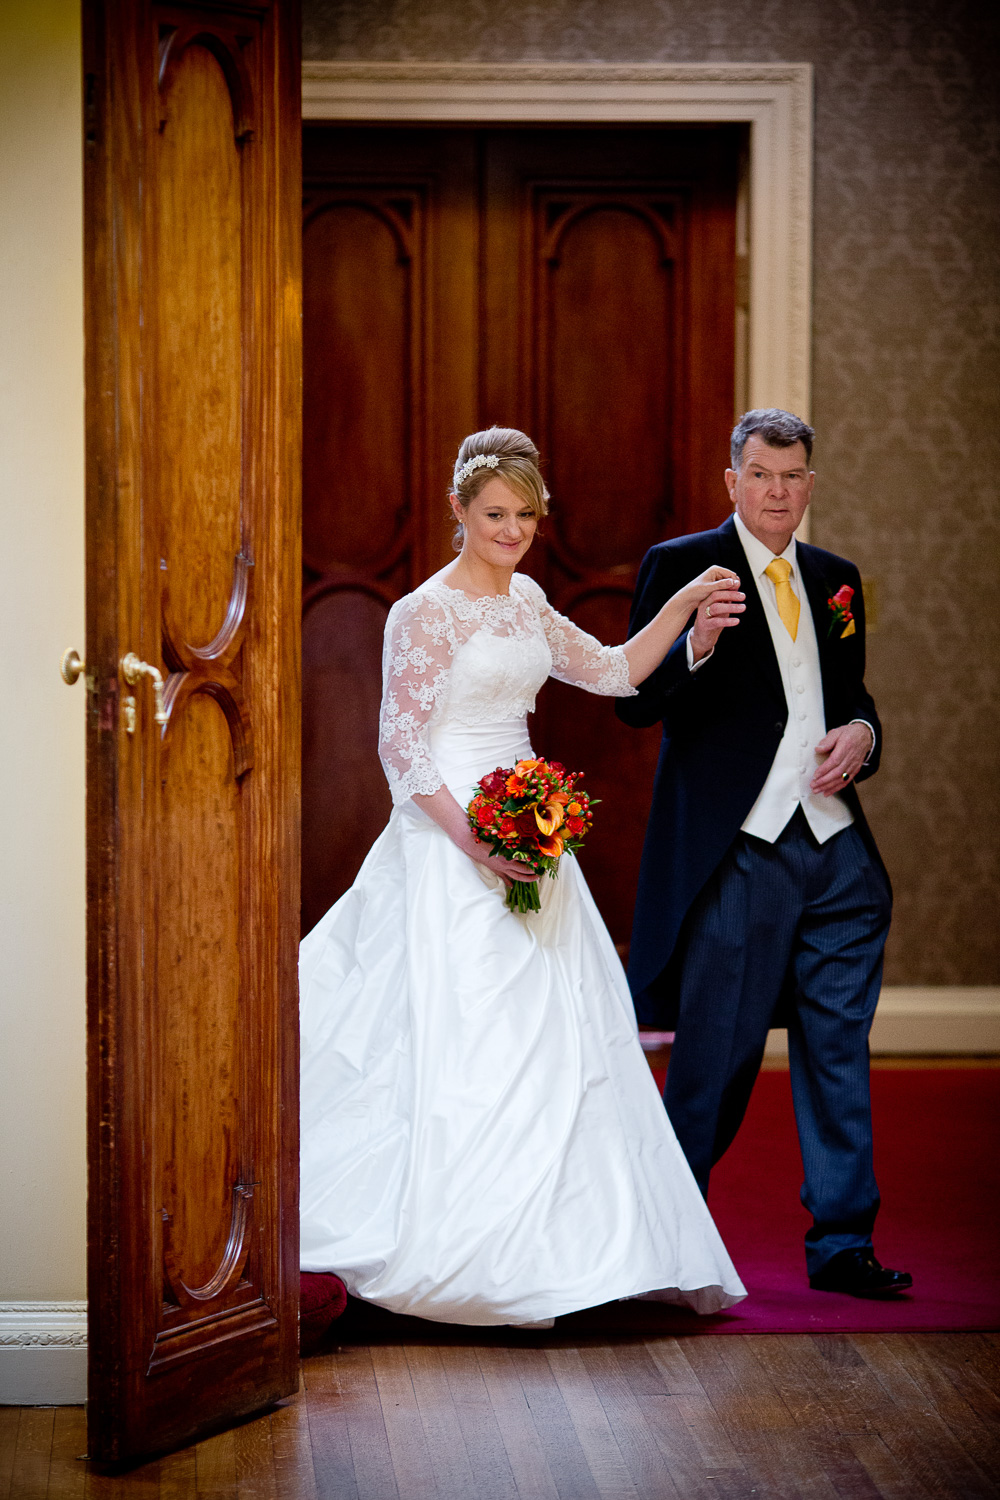 hedsor-weddings-vanessa-162.jpg